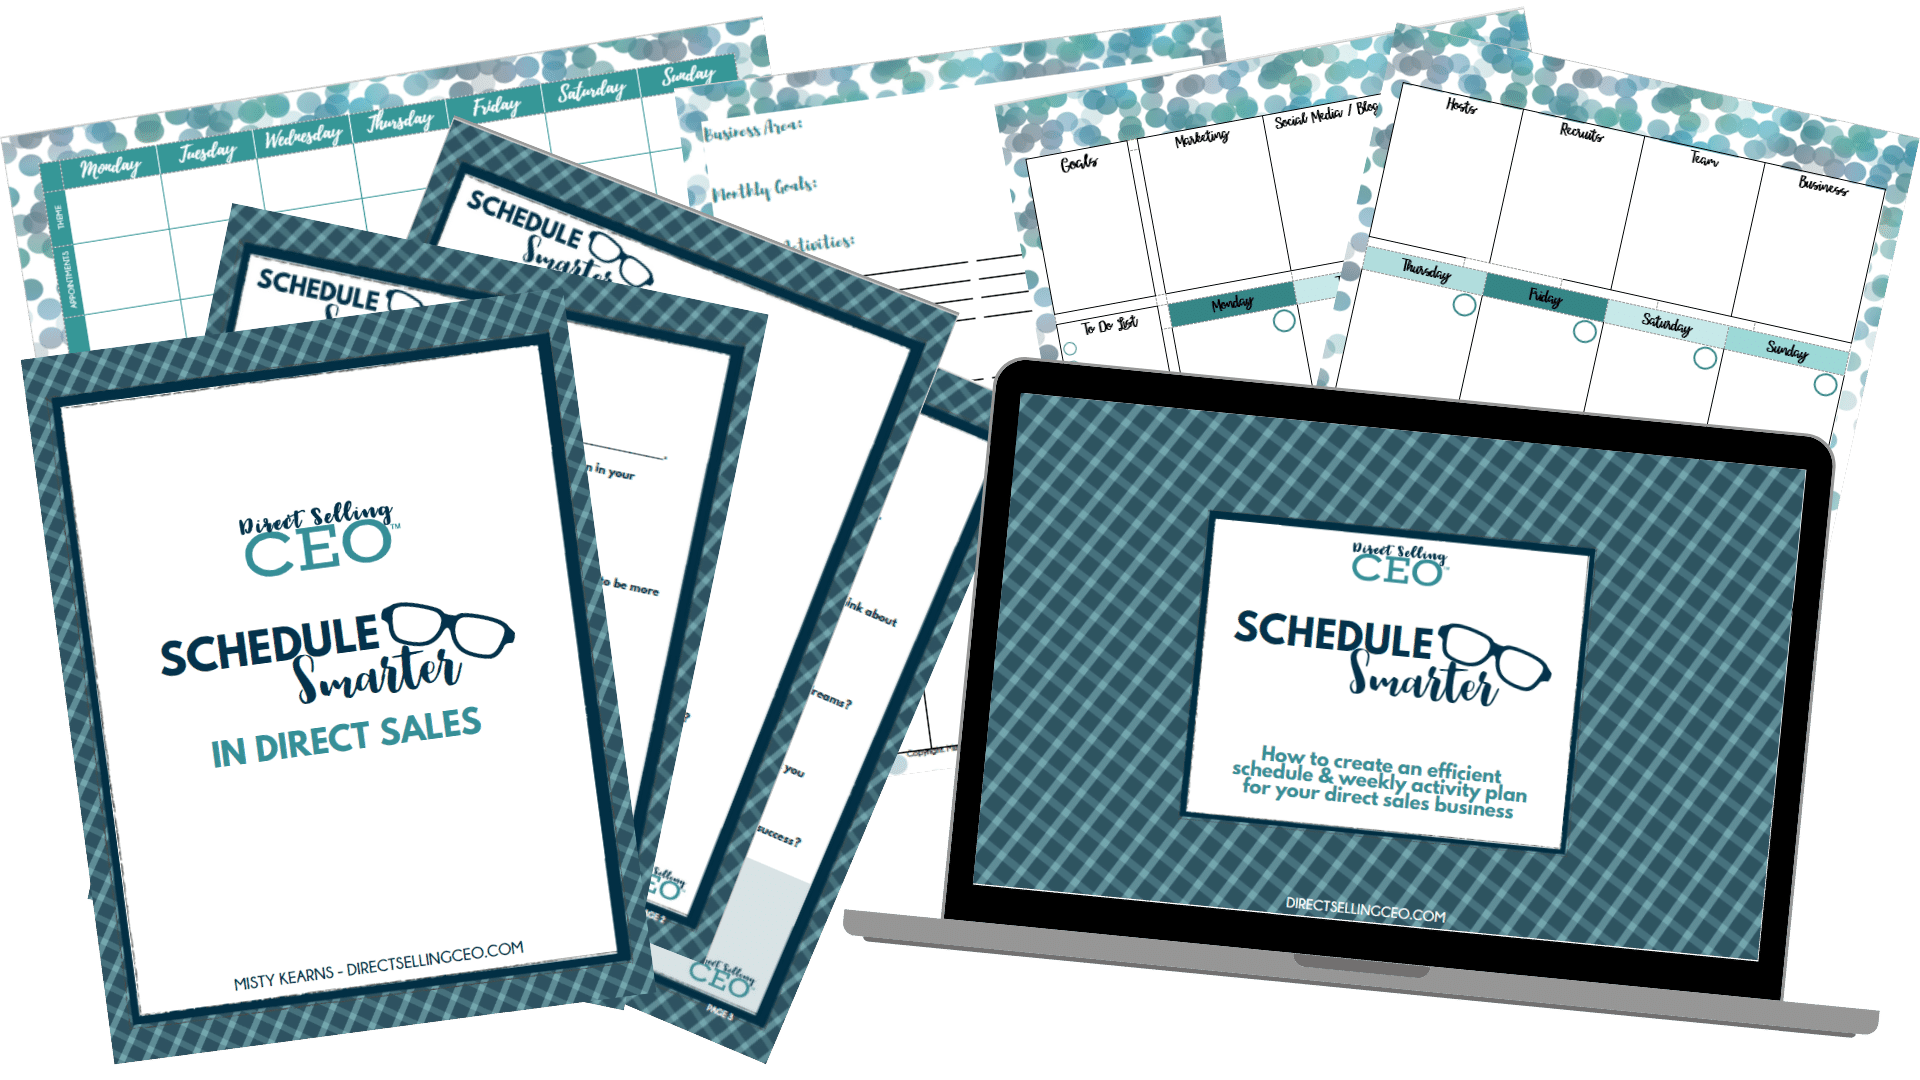 Schedule Smarter in Direct Sales System and Toolkit Planner